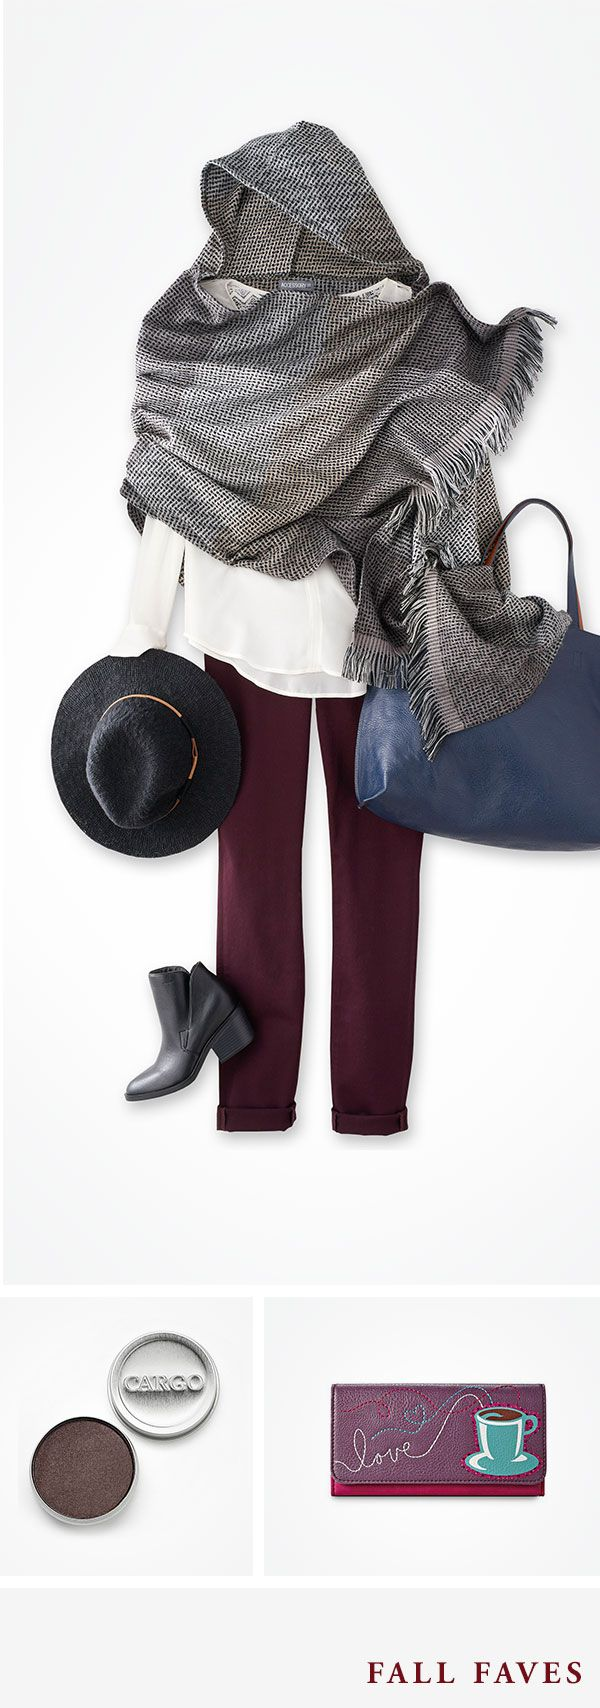 Create a fresh fall look from head to toe with some of our favorite styles. Start with a crisp white button-down shirt and wine-colored skinnies. Add an effortless, warm wrap—we love this hooded version—a brimmed, black hat and booties. A oversized tote in a deep steel blue completes the look.